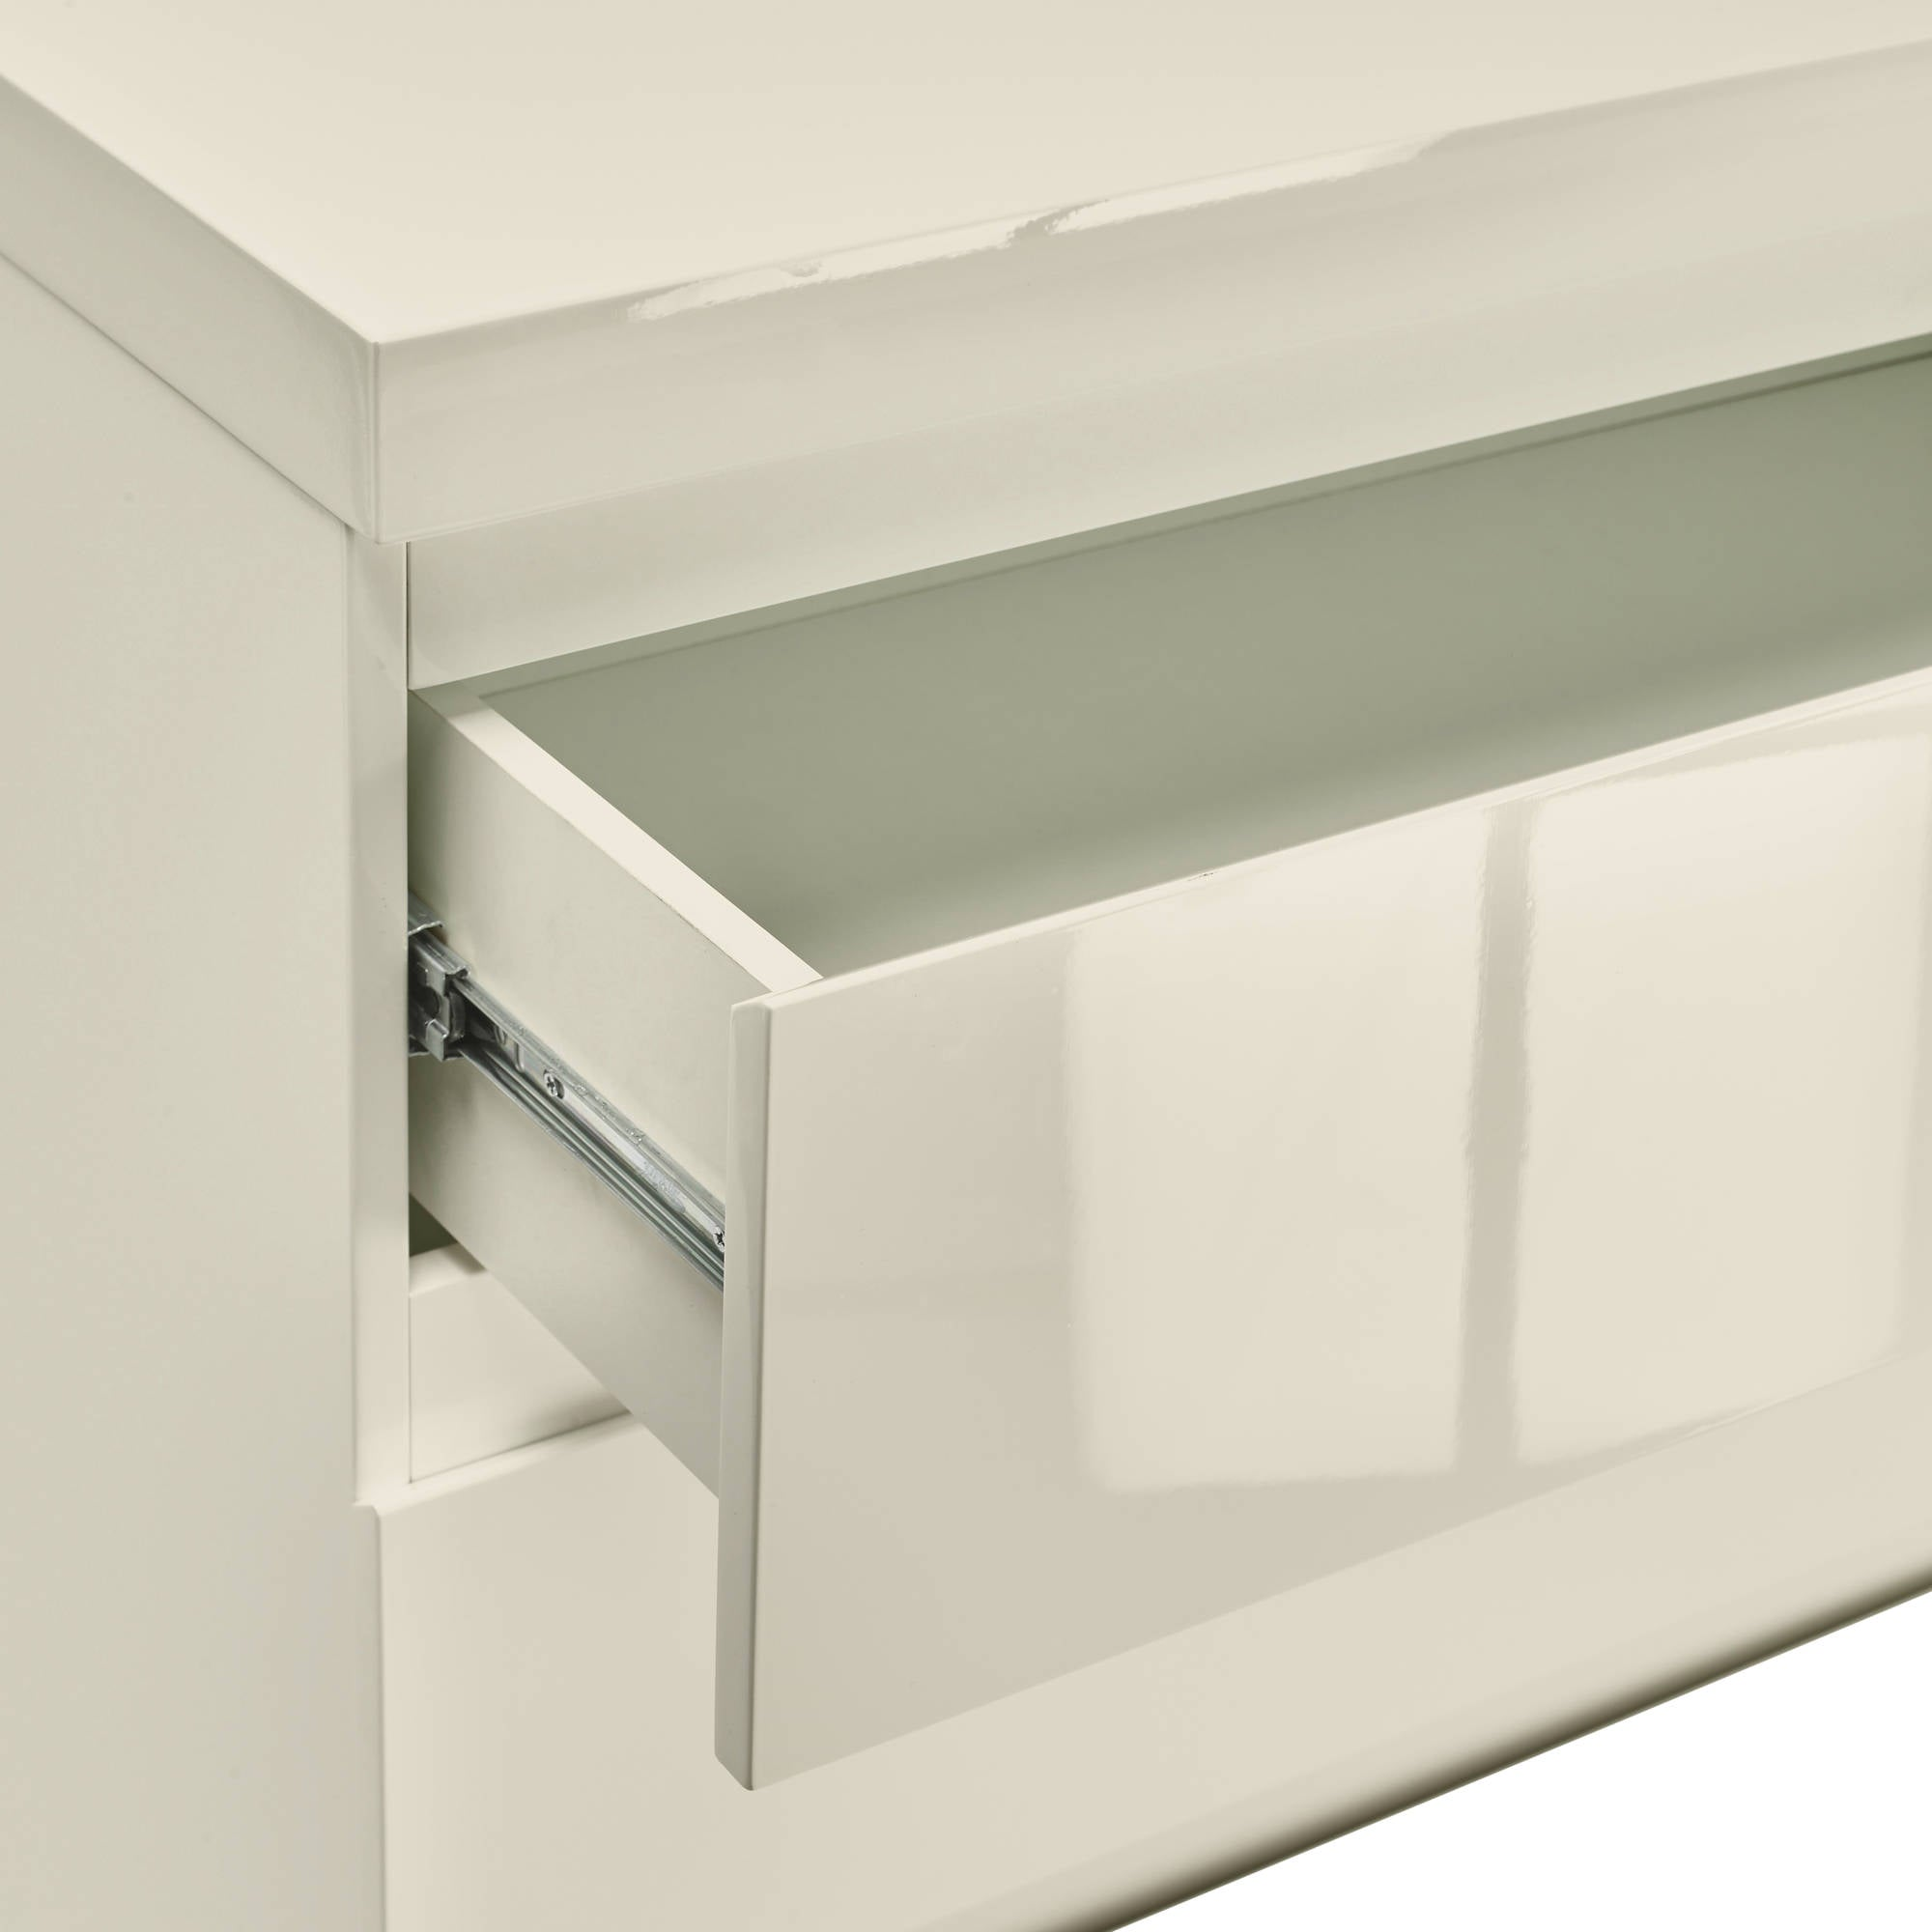 Cuba Bedside Table in Cream - Ezzo